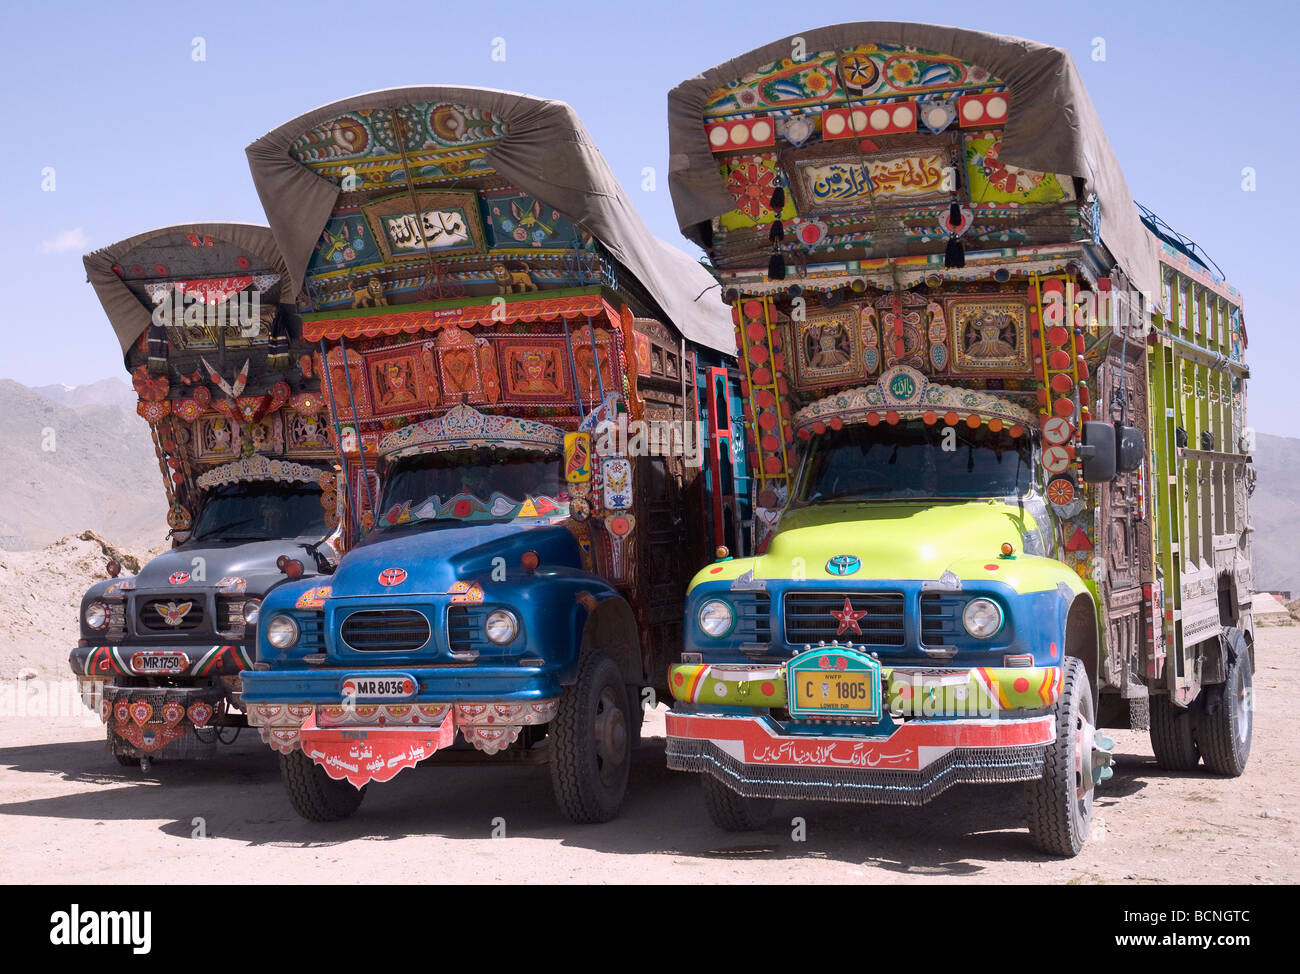 Three elaborately decorated Pakistani trucks parked beside the main road north of Kabul, Afghanistan - Stock Image